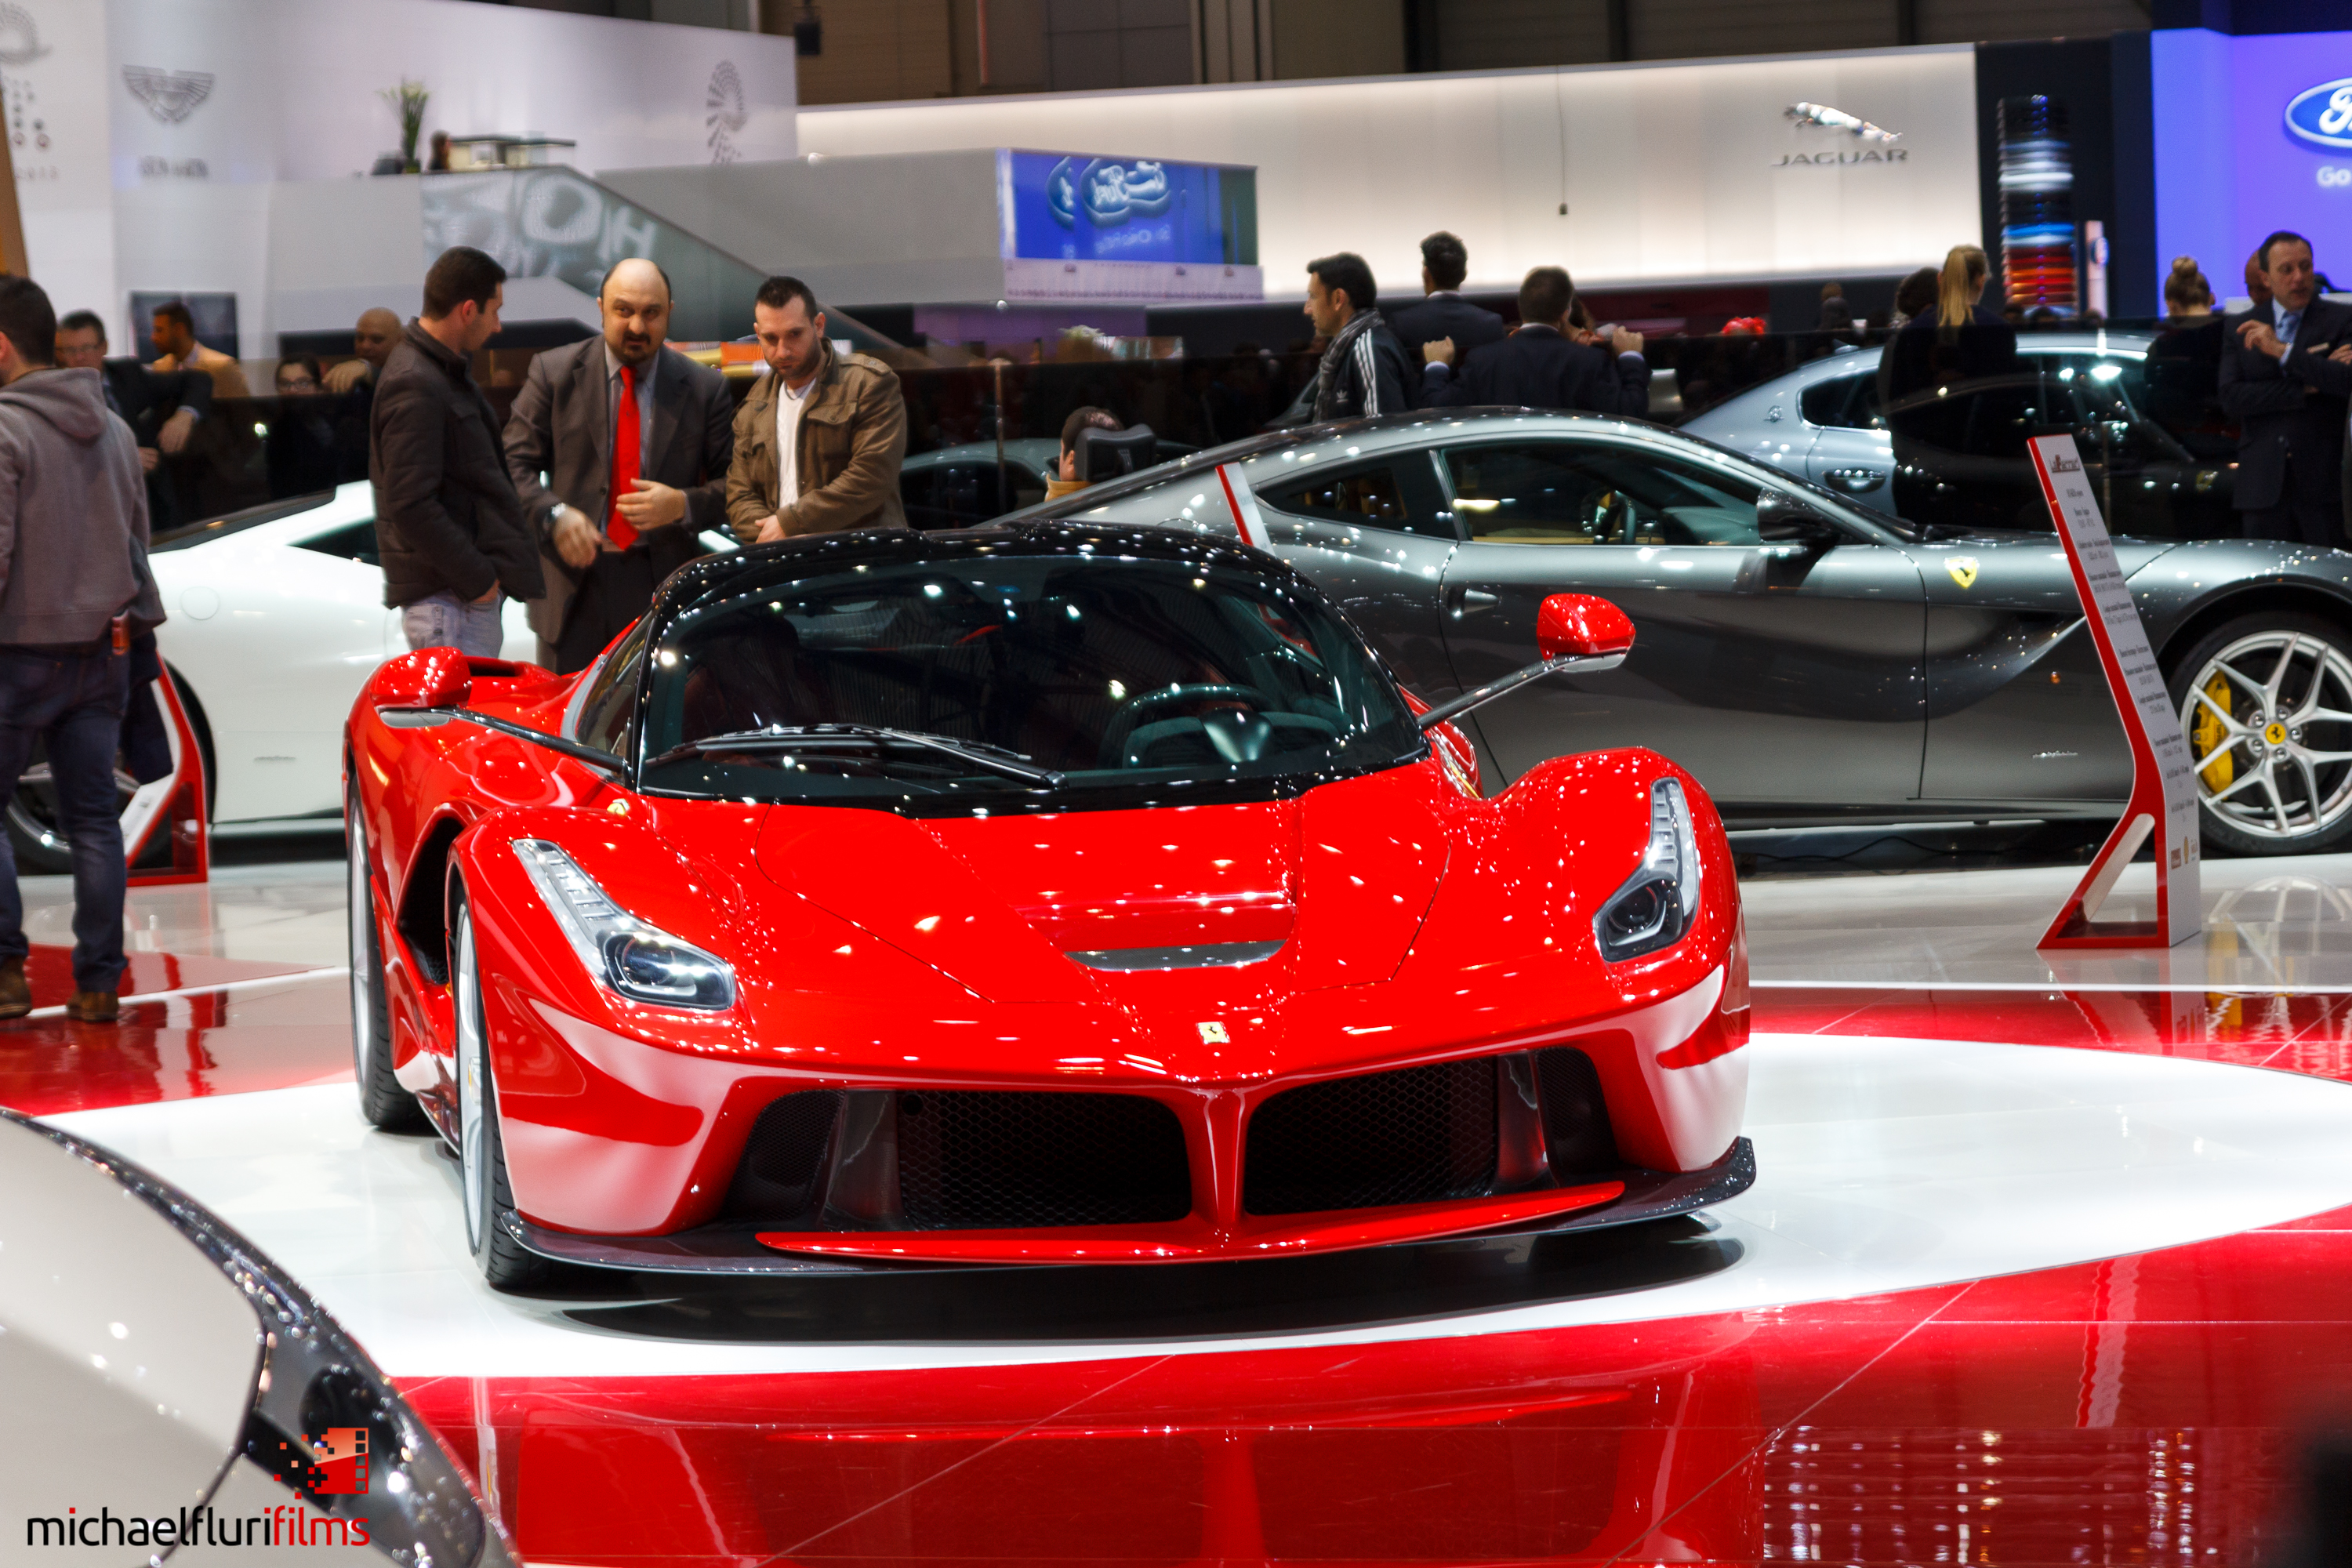 Auto-Salon Genf: LaFerrari